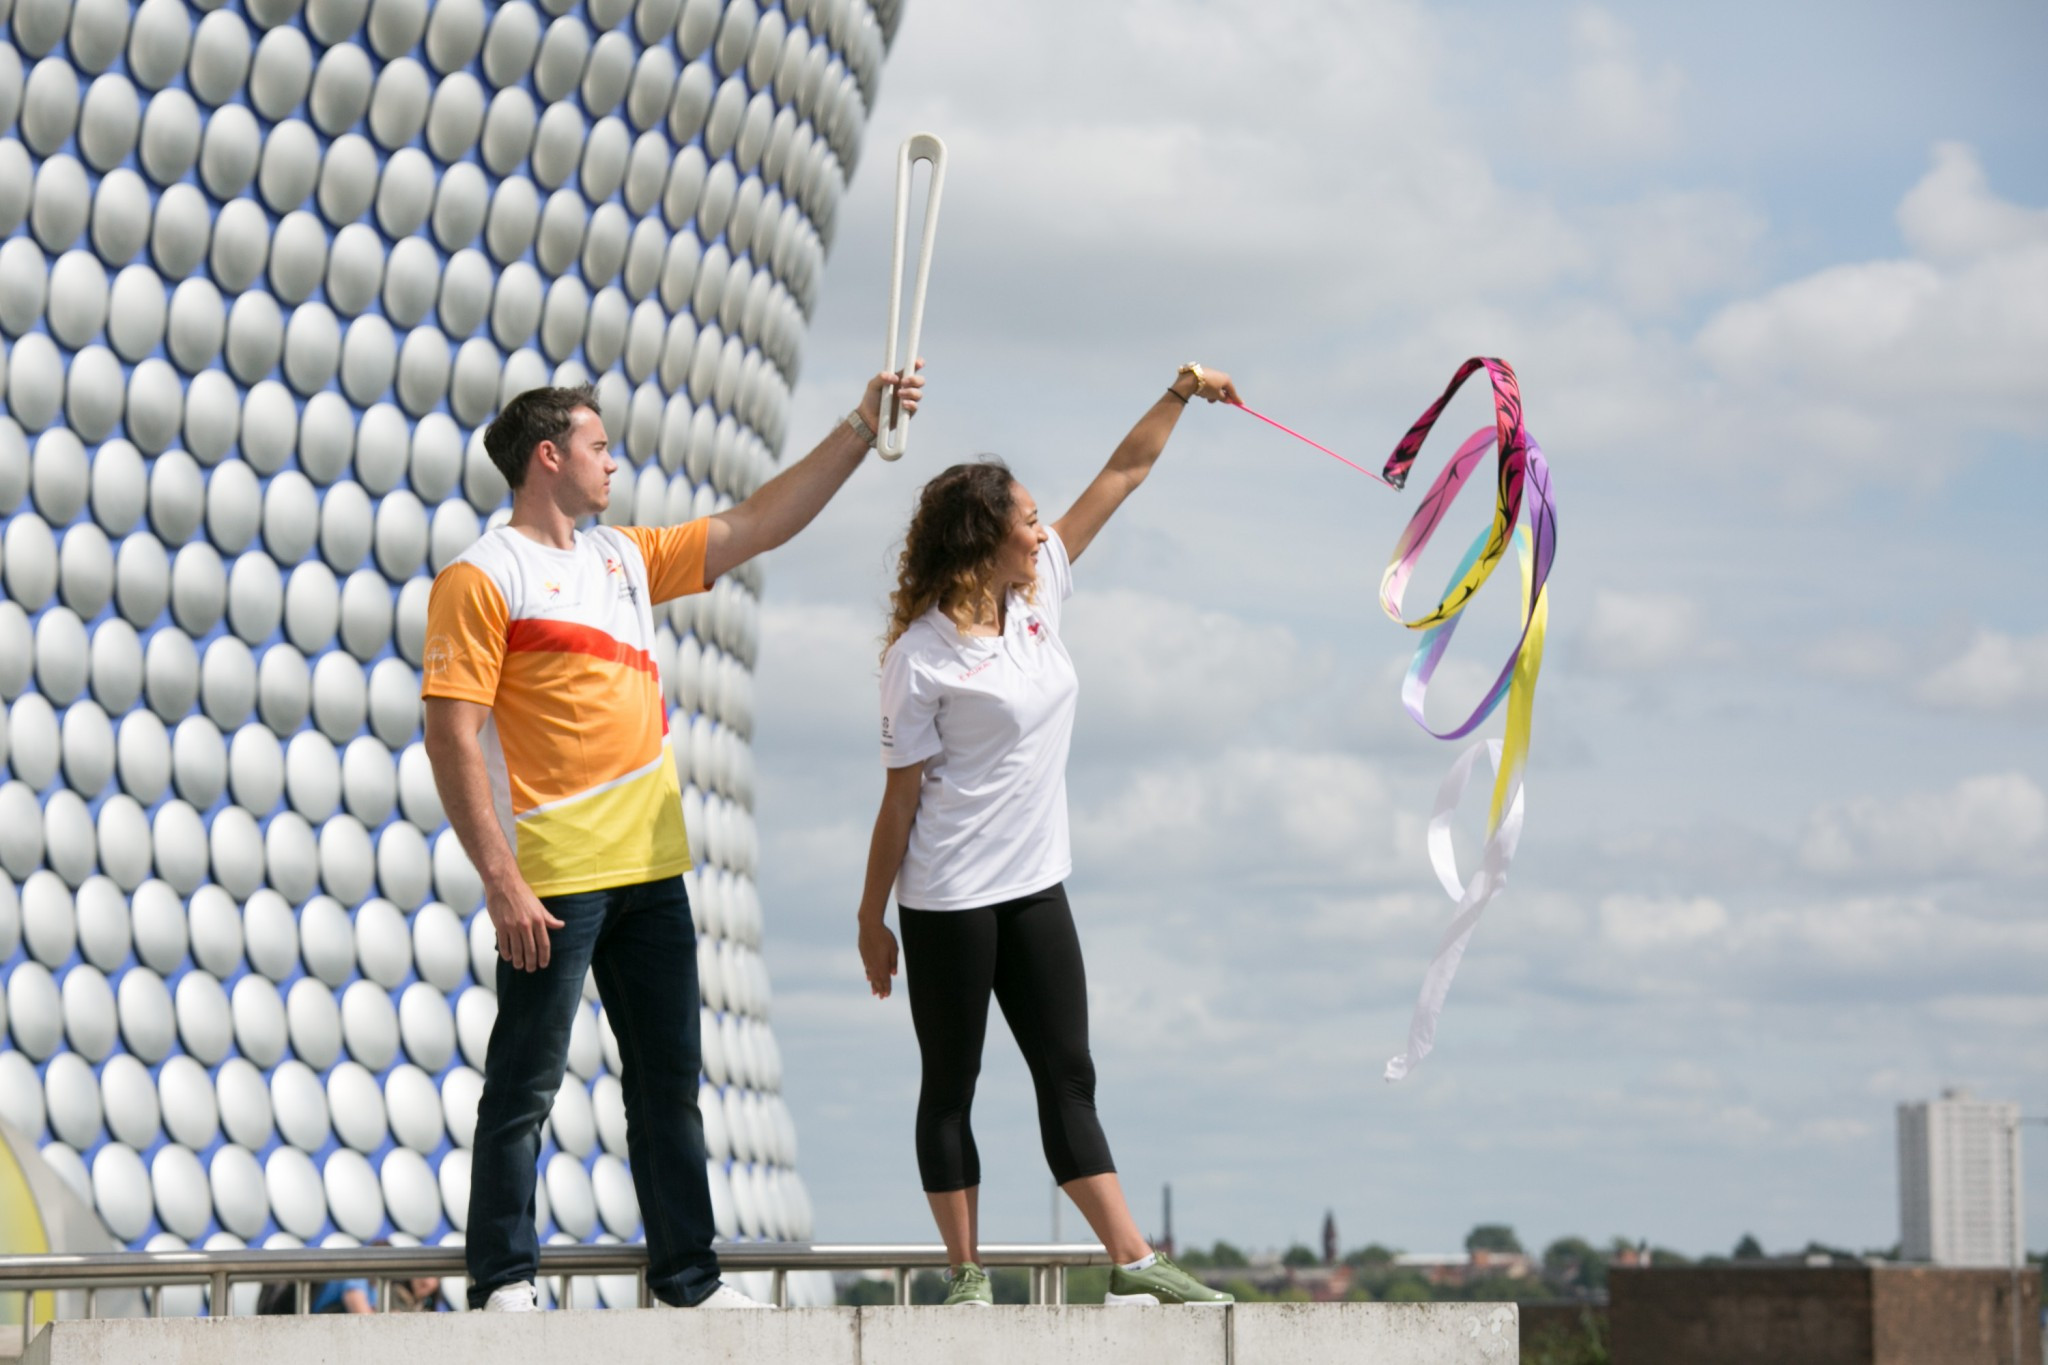 Gymnasts Kristian Thomas, a gold medallist at the Glasgow 2014 Commonwealth Games, and Mimi Cesar pose with the Baton outside the iconic Bullring in Birmingham ©Birmingham 2022